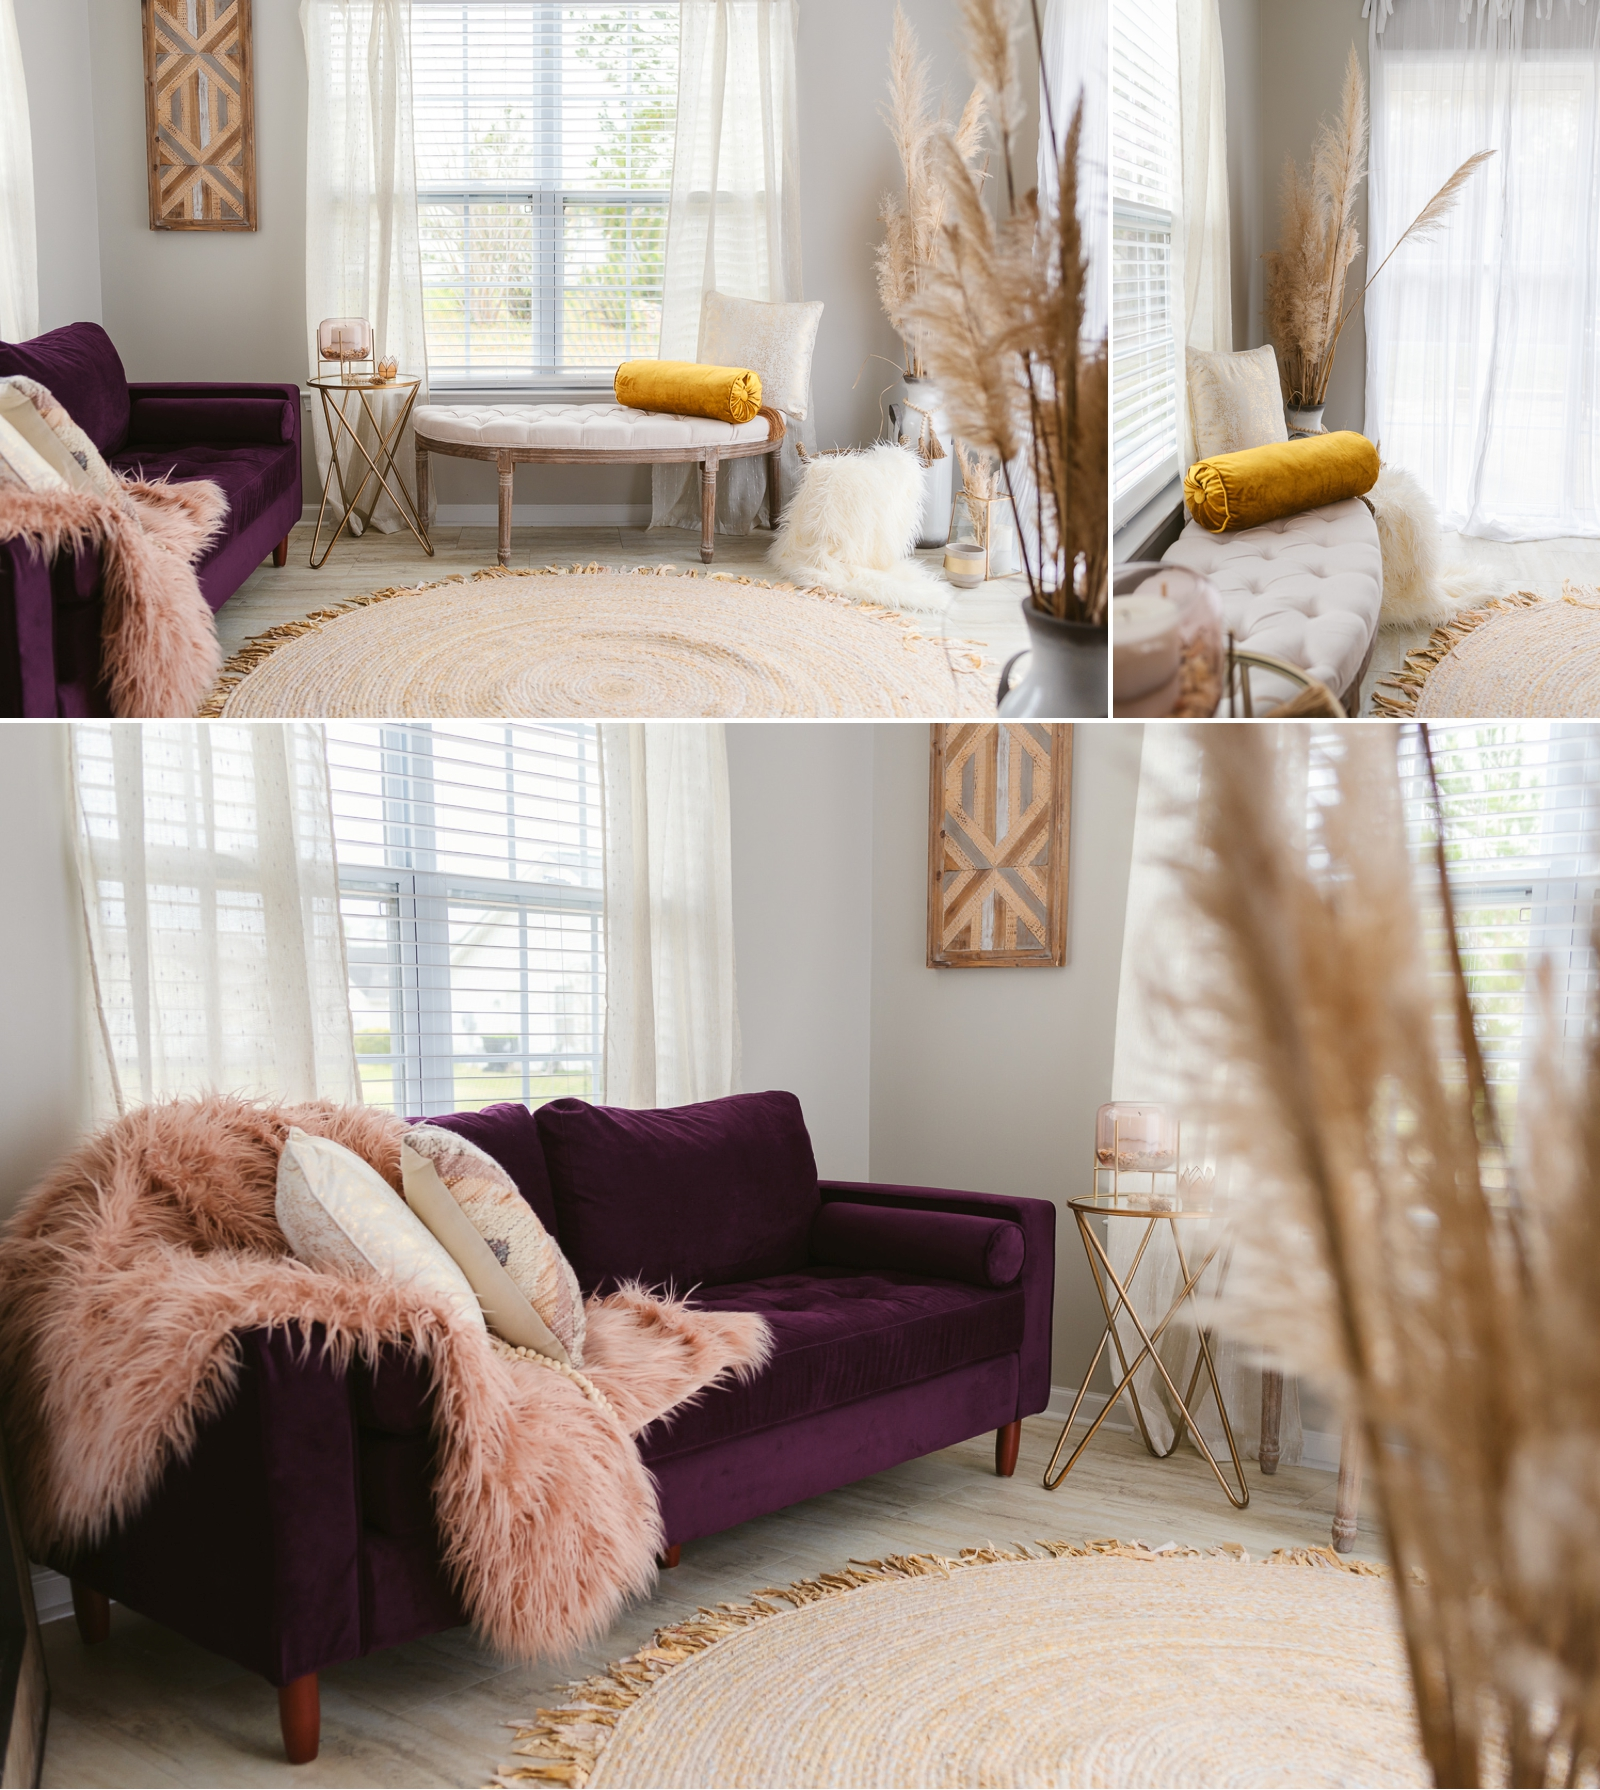 boudoir photography studio showcase gold metal pin leg table with pink and gold candle holder wood wall art rustic cream bench and purple couch pink fur